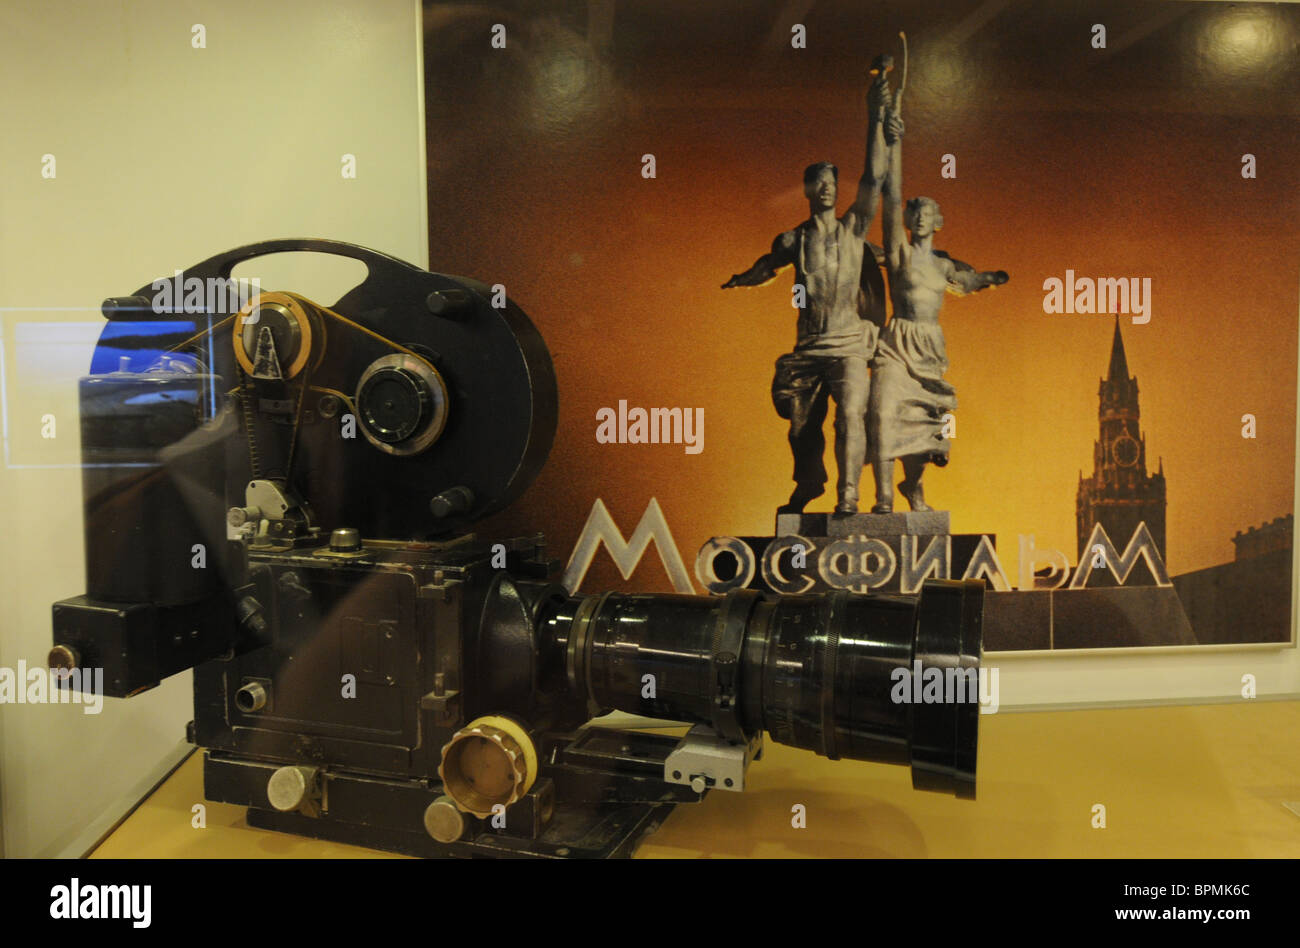 Mosfilm cinema concern marks its 85th anniversary - Stock Image